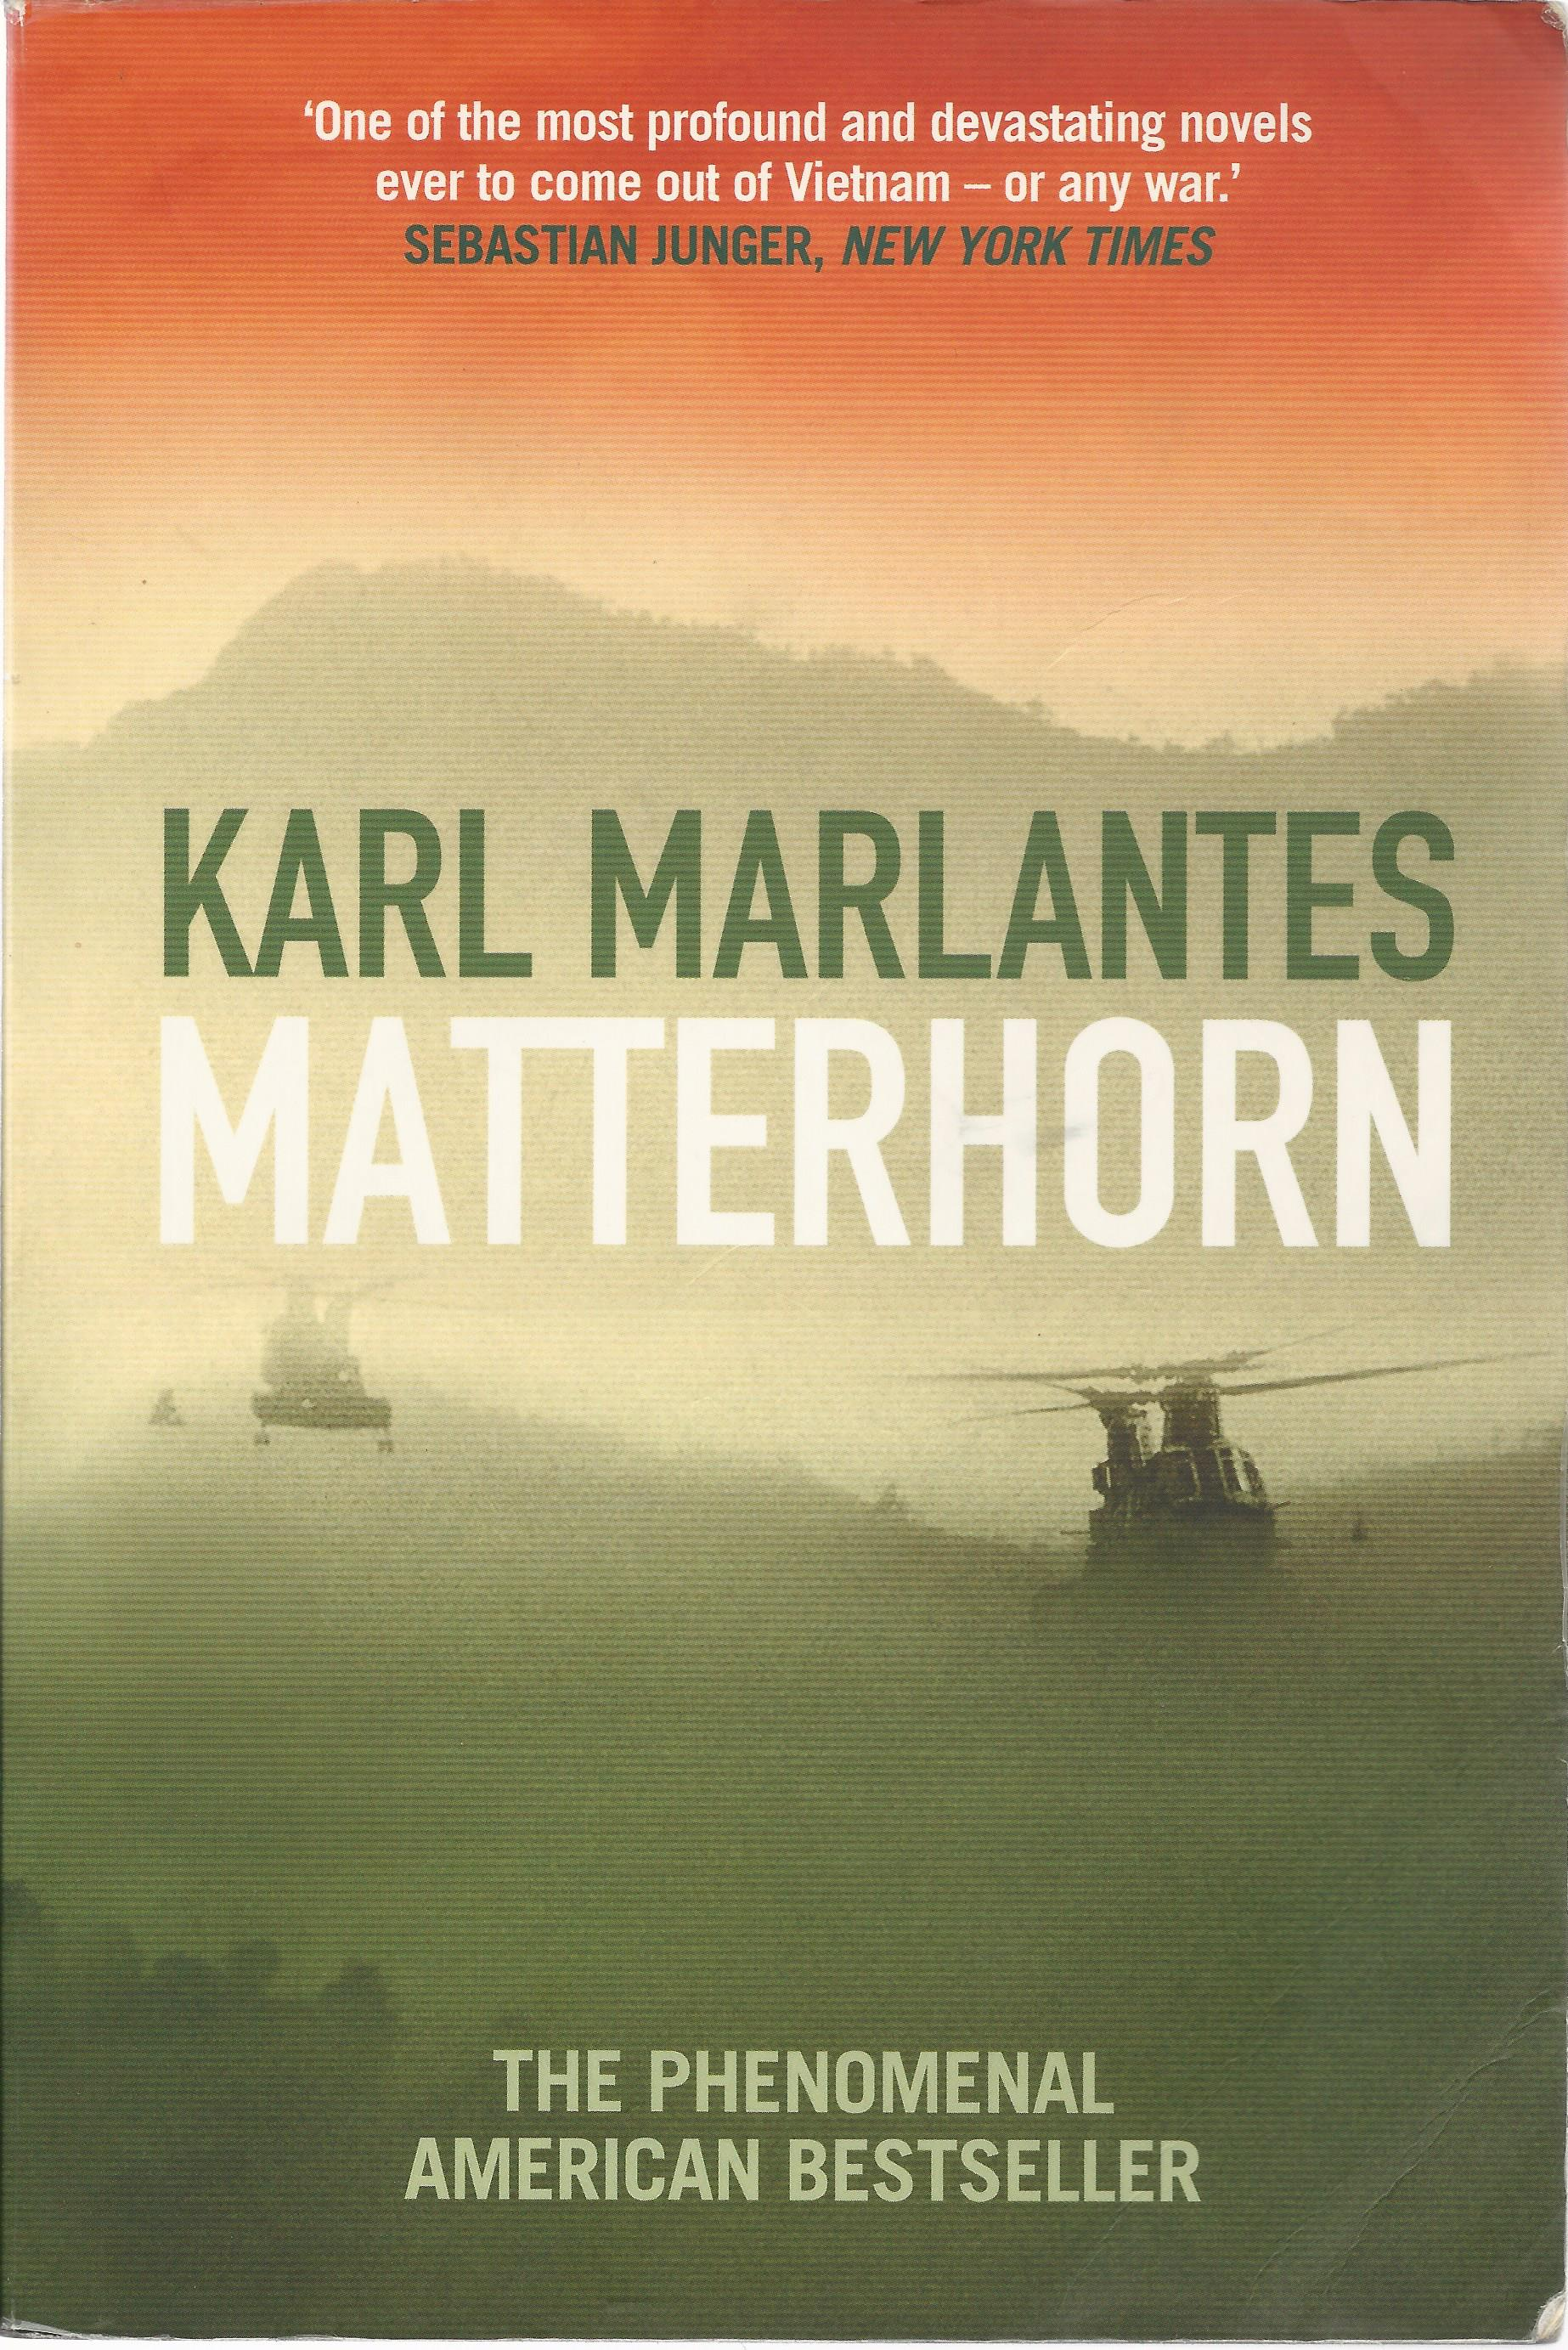 The frist book I have read about Vietnam in over 15 years